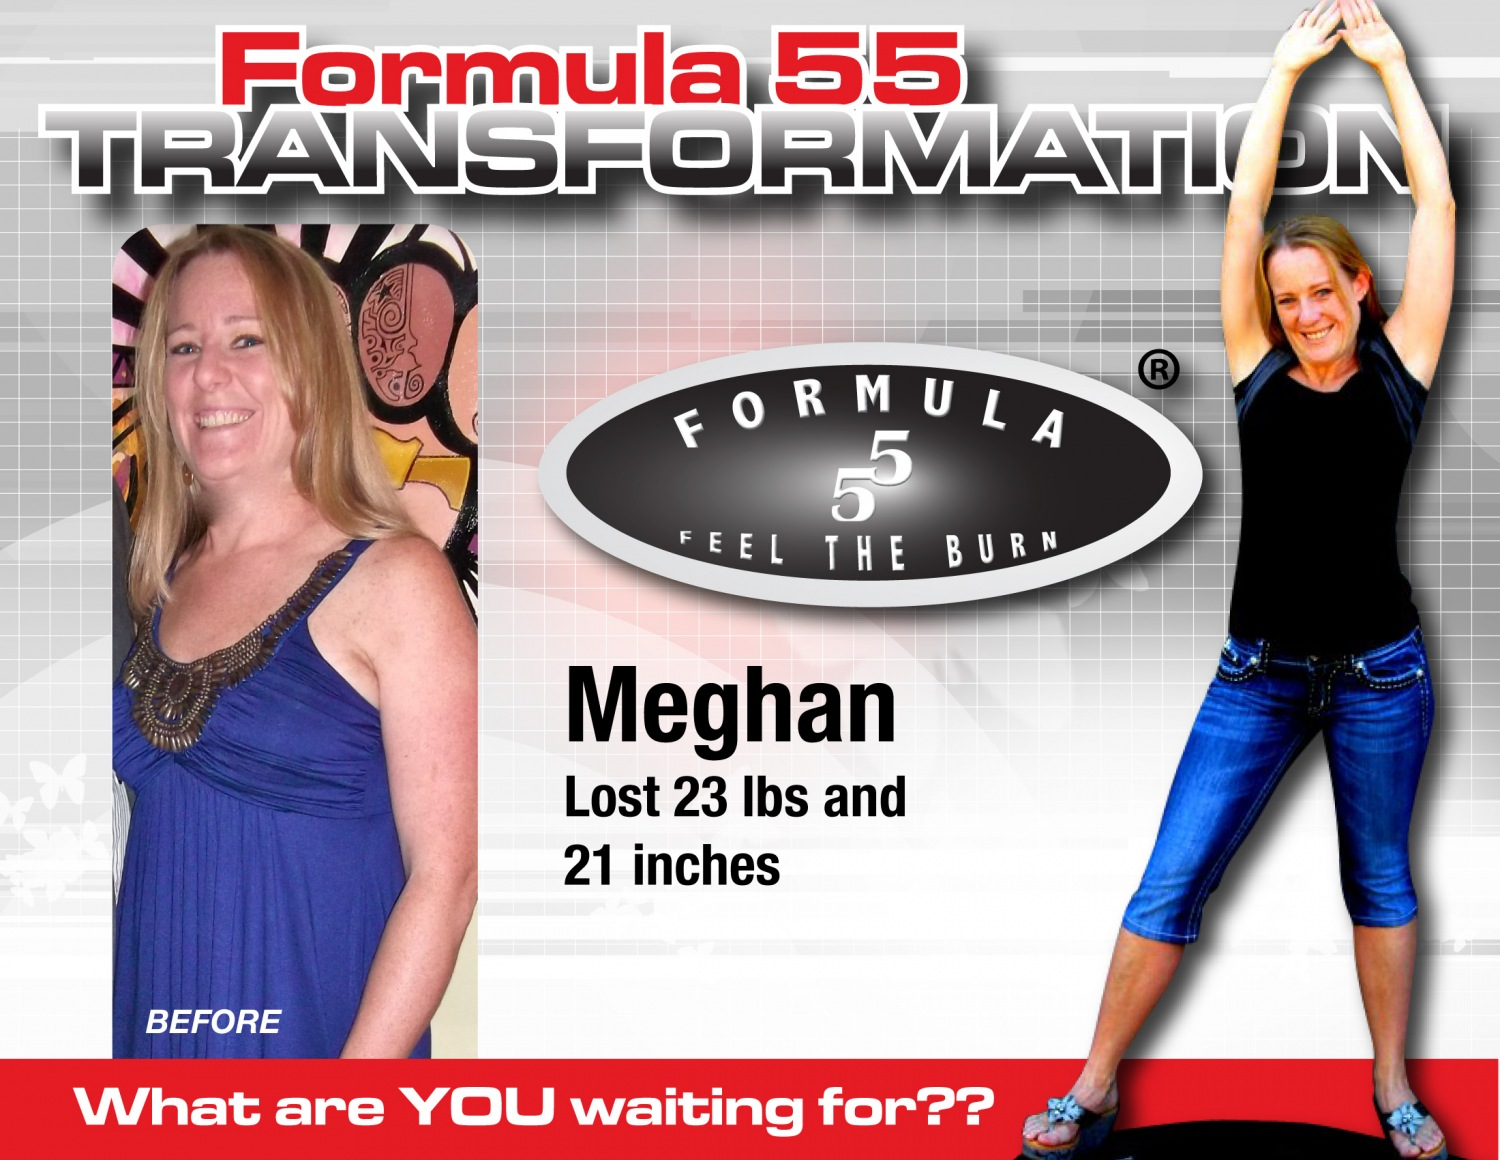 form-55-Transformation-meghan.jpg